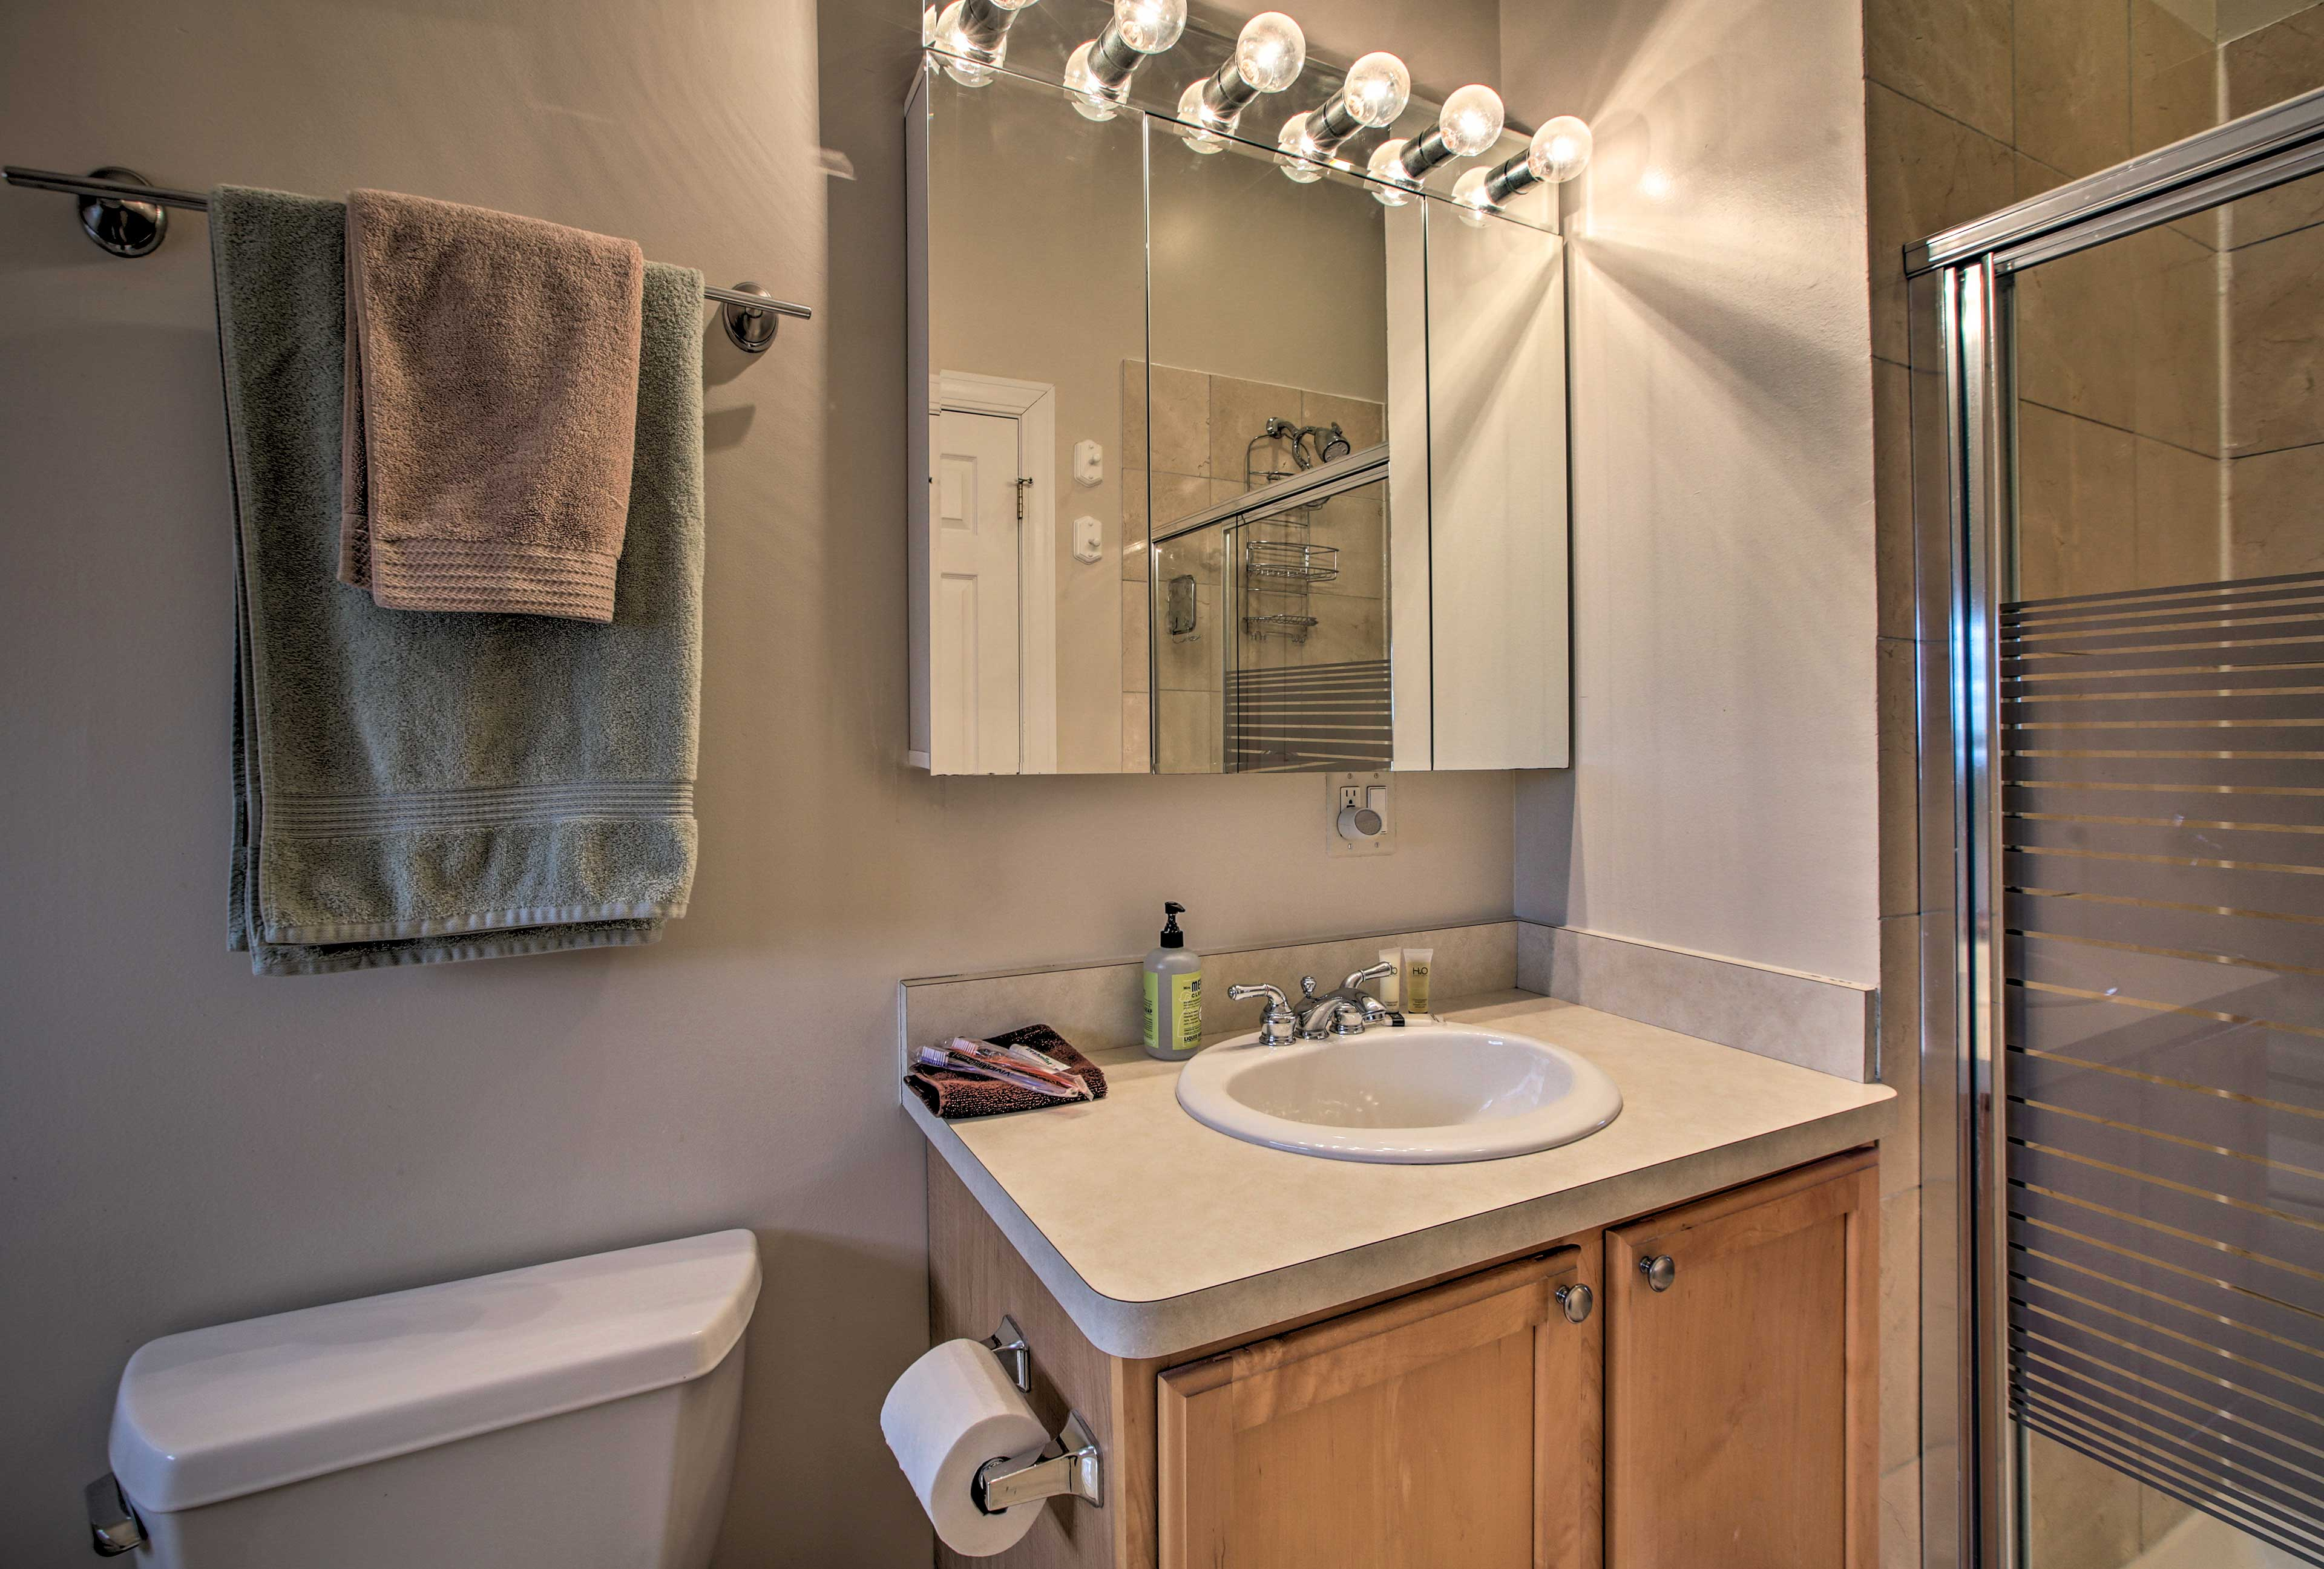 The first full bathroom features a walk-in shower with glass doors.